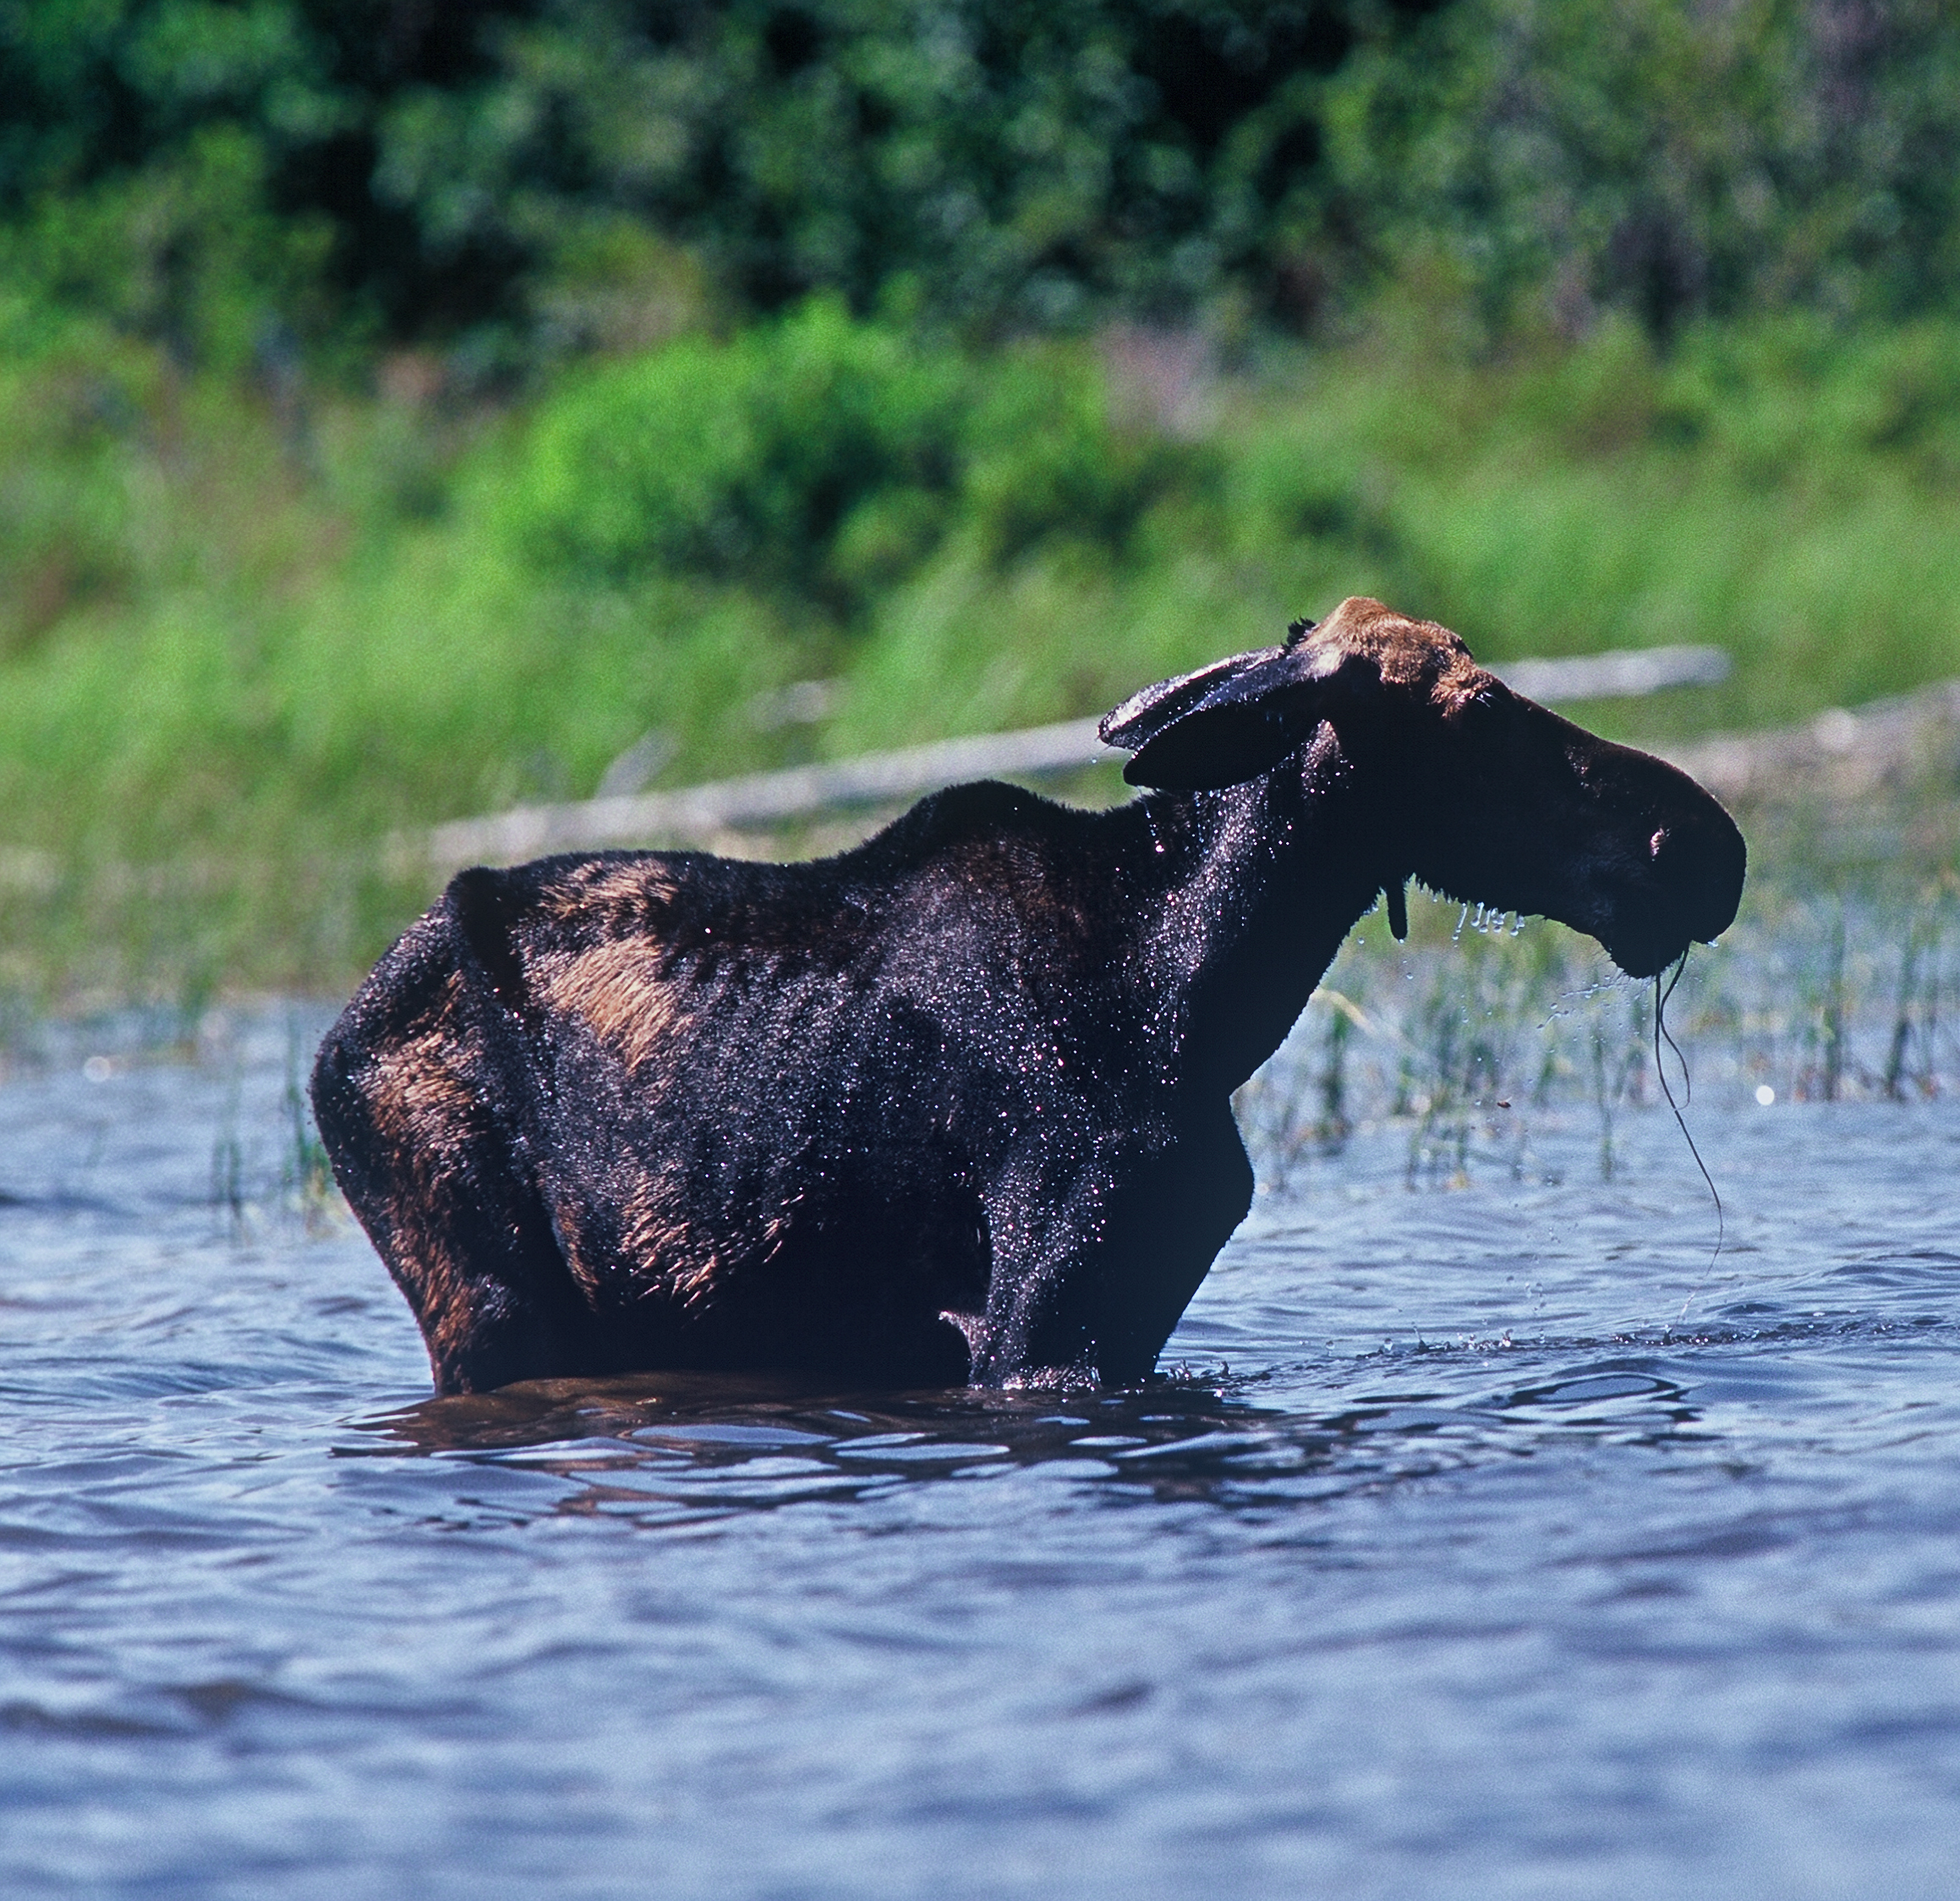 Malnourished cow moose, stressed by high infestation of winter ticks. In order for Vermont's moose population to survive stresses like parasites and diseases they must have adequate habitat.